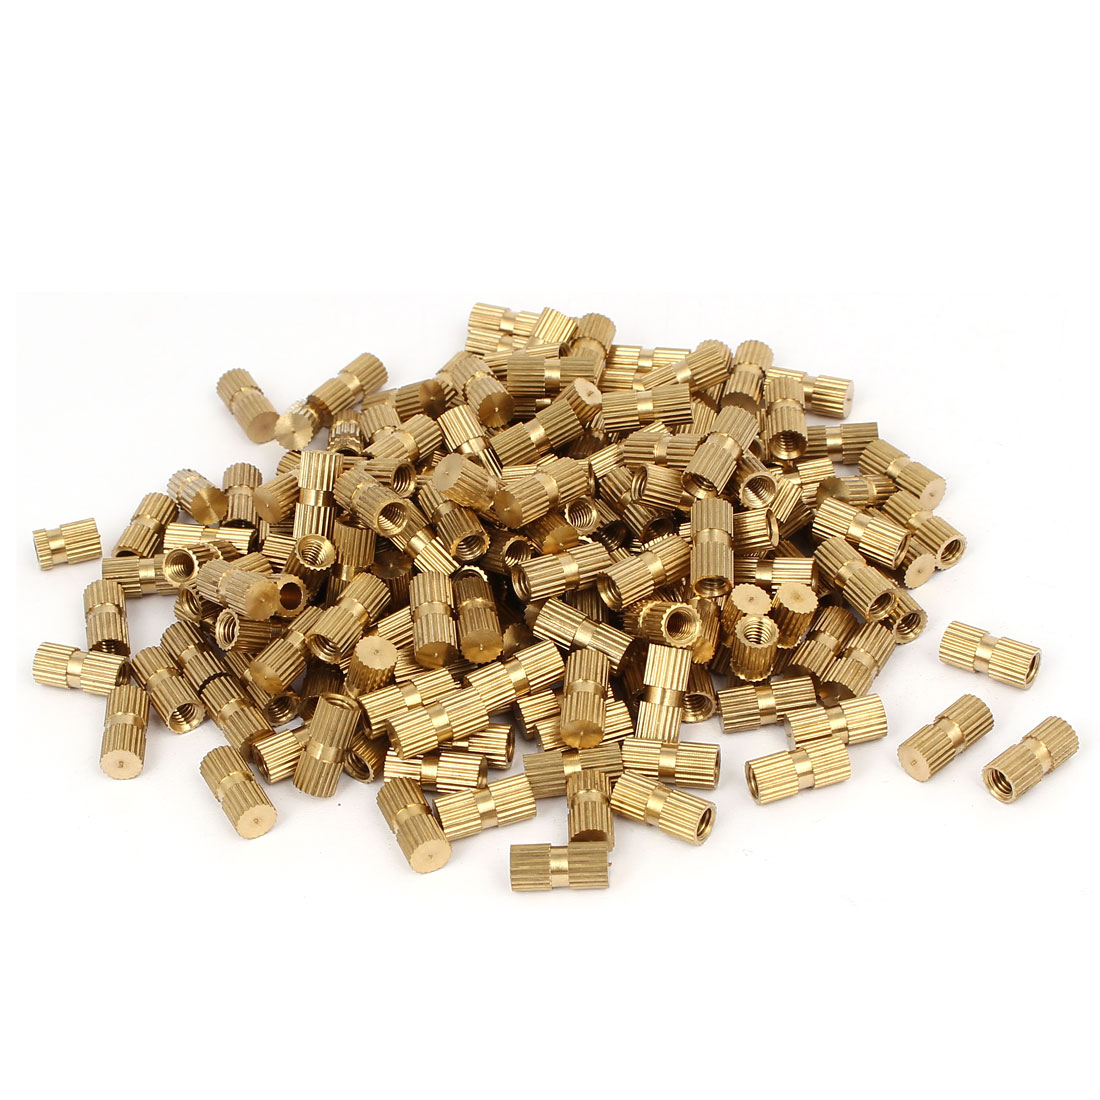 M4 x 12mm 5.3mm OD Brass Injection Molding Embedded Knurled Thumb Nut 200PCS